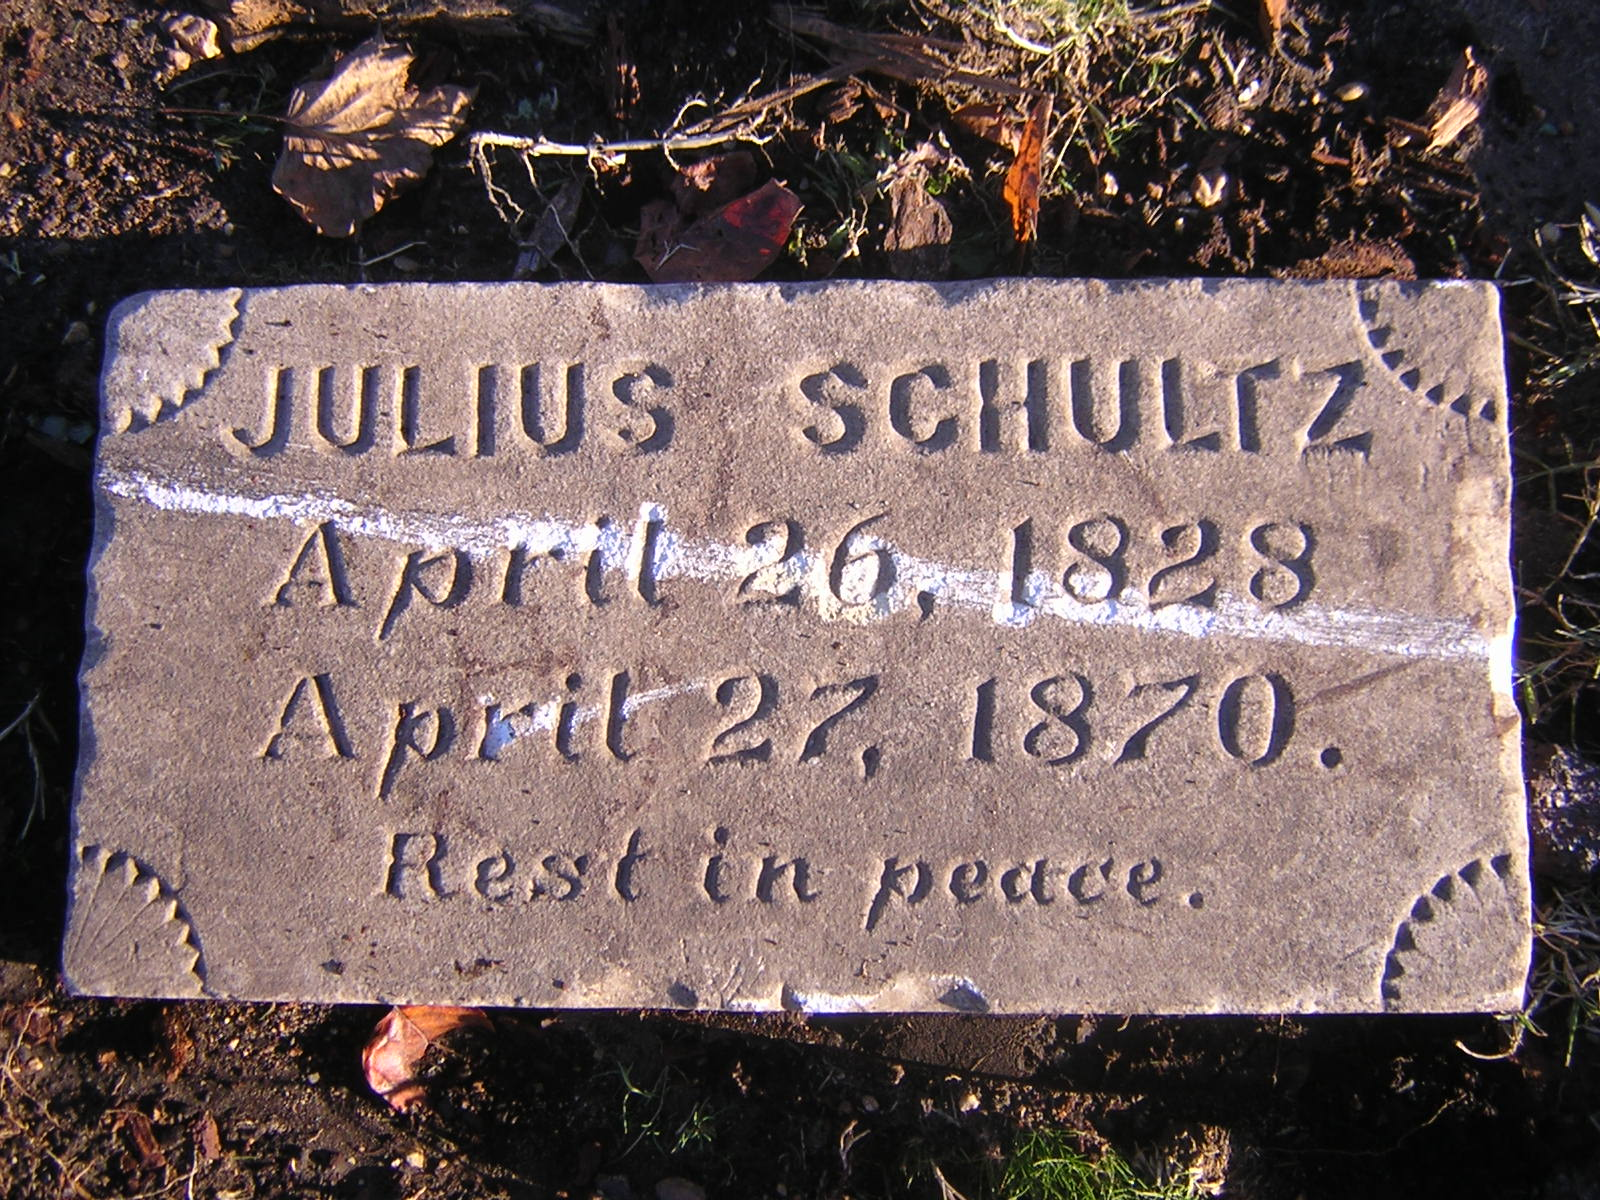 Officer Julius Schultz | Richmond Police Department, Virginia